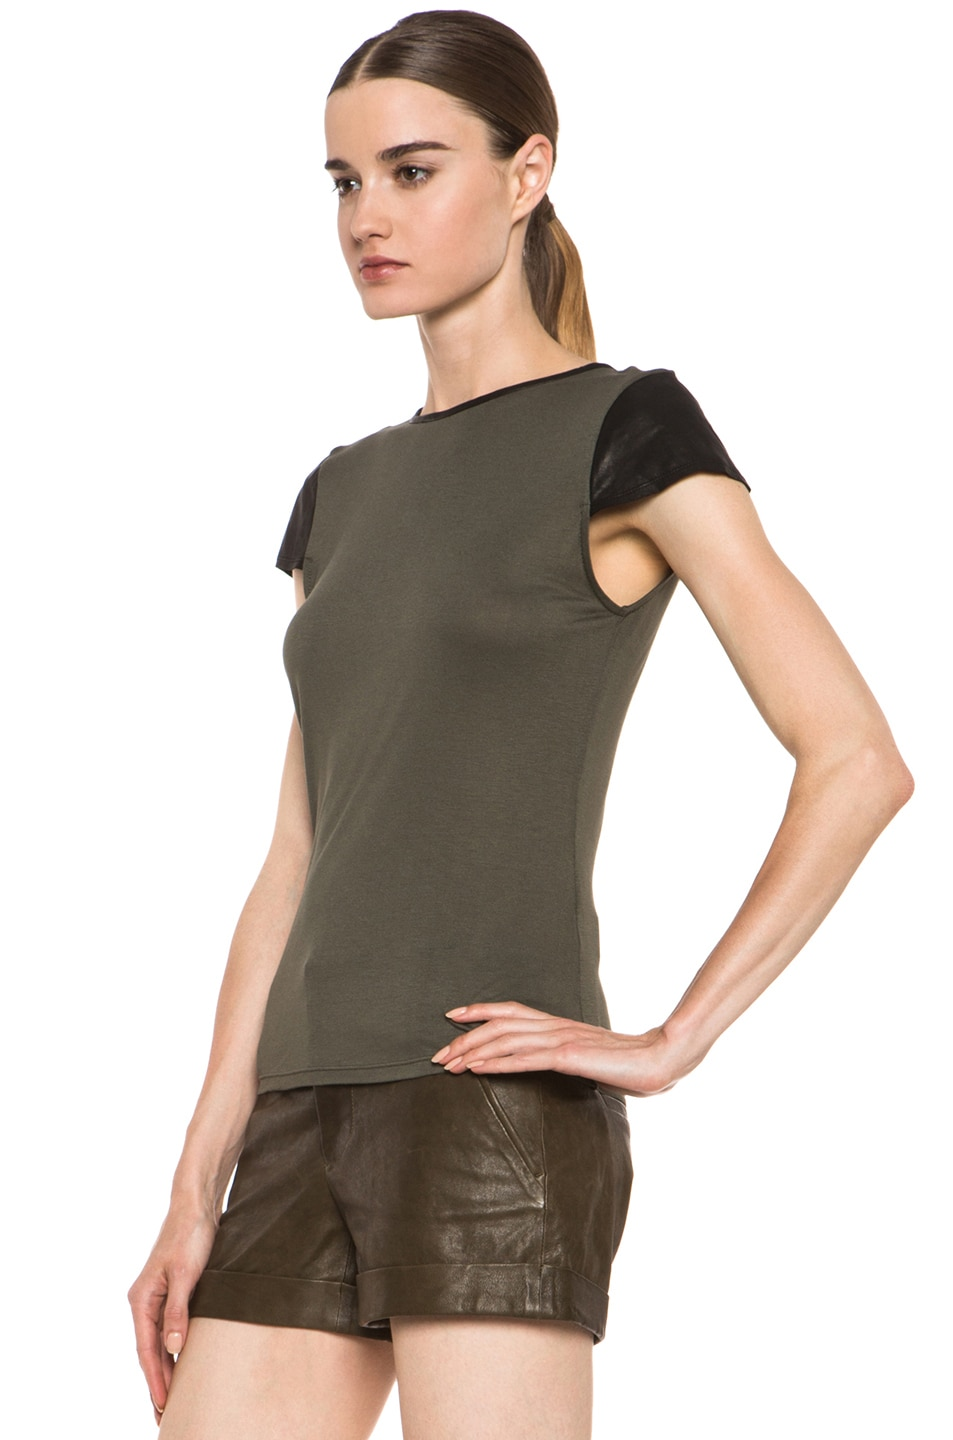 Image 2 of Alice + Olivia Fitted Viscose Tee with Leather in Old Army